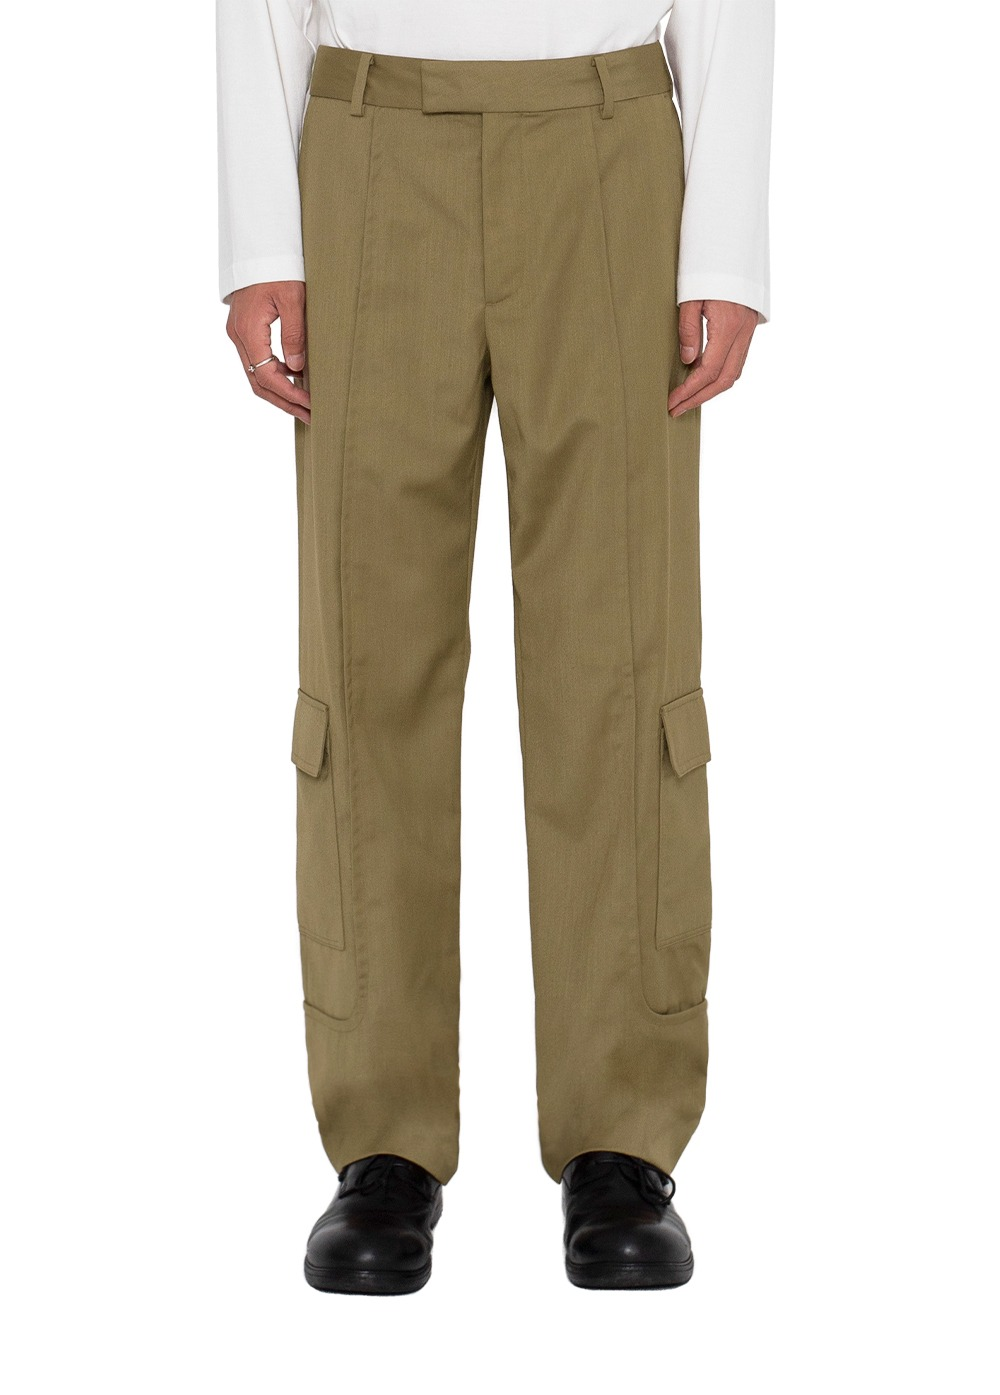 LIFUL SIDE CARGO POCKET TROUSERS beige brown